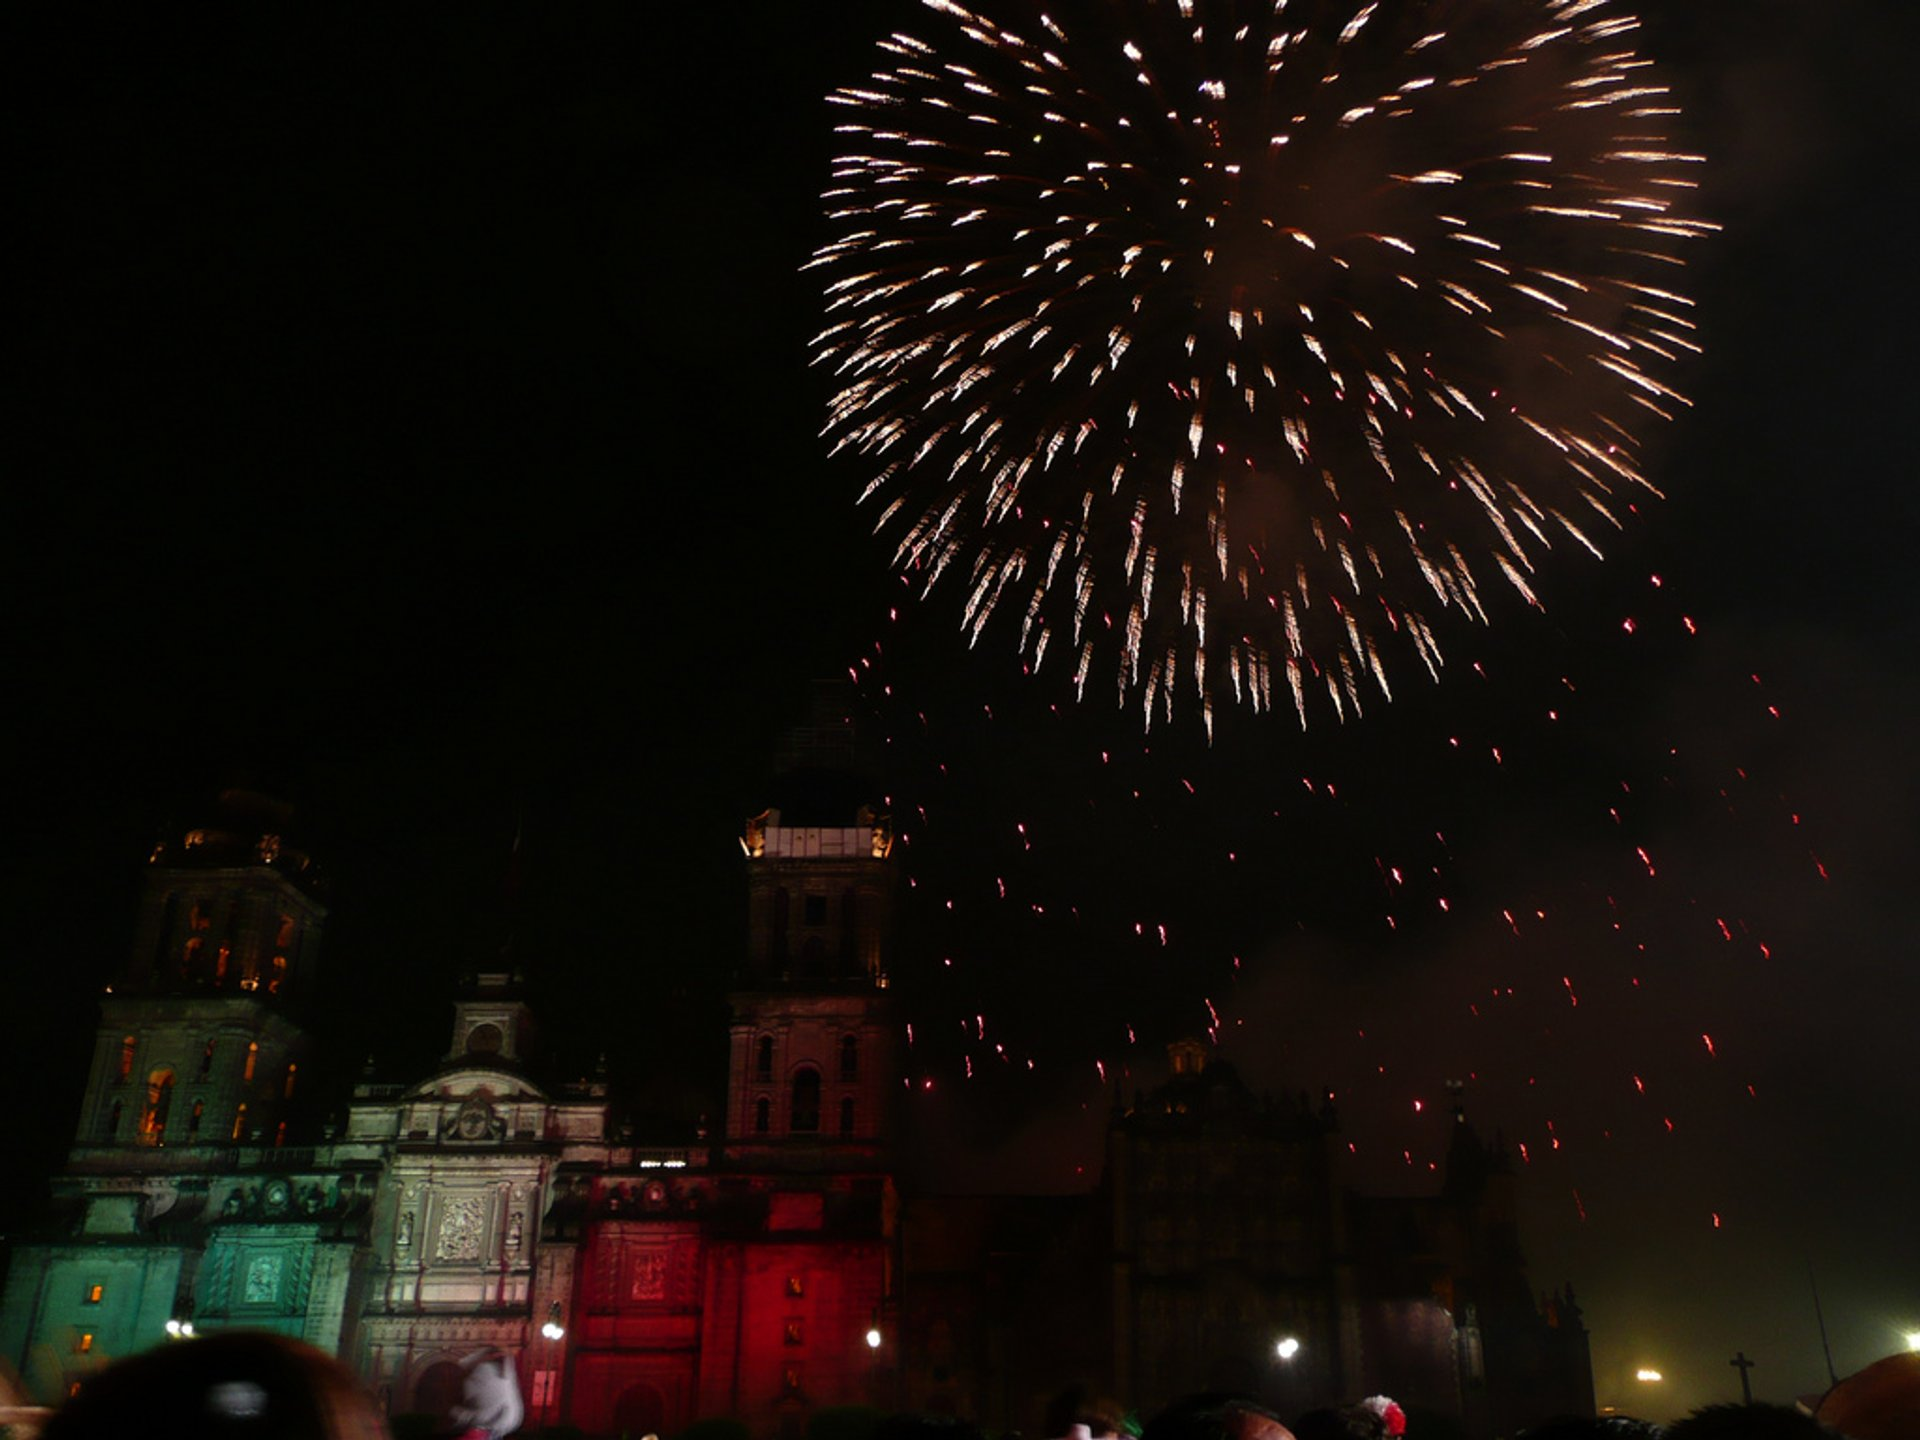 Independence Day fireworks in Mexico City 2020